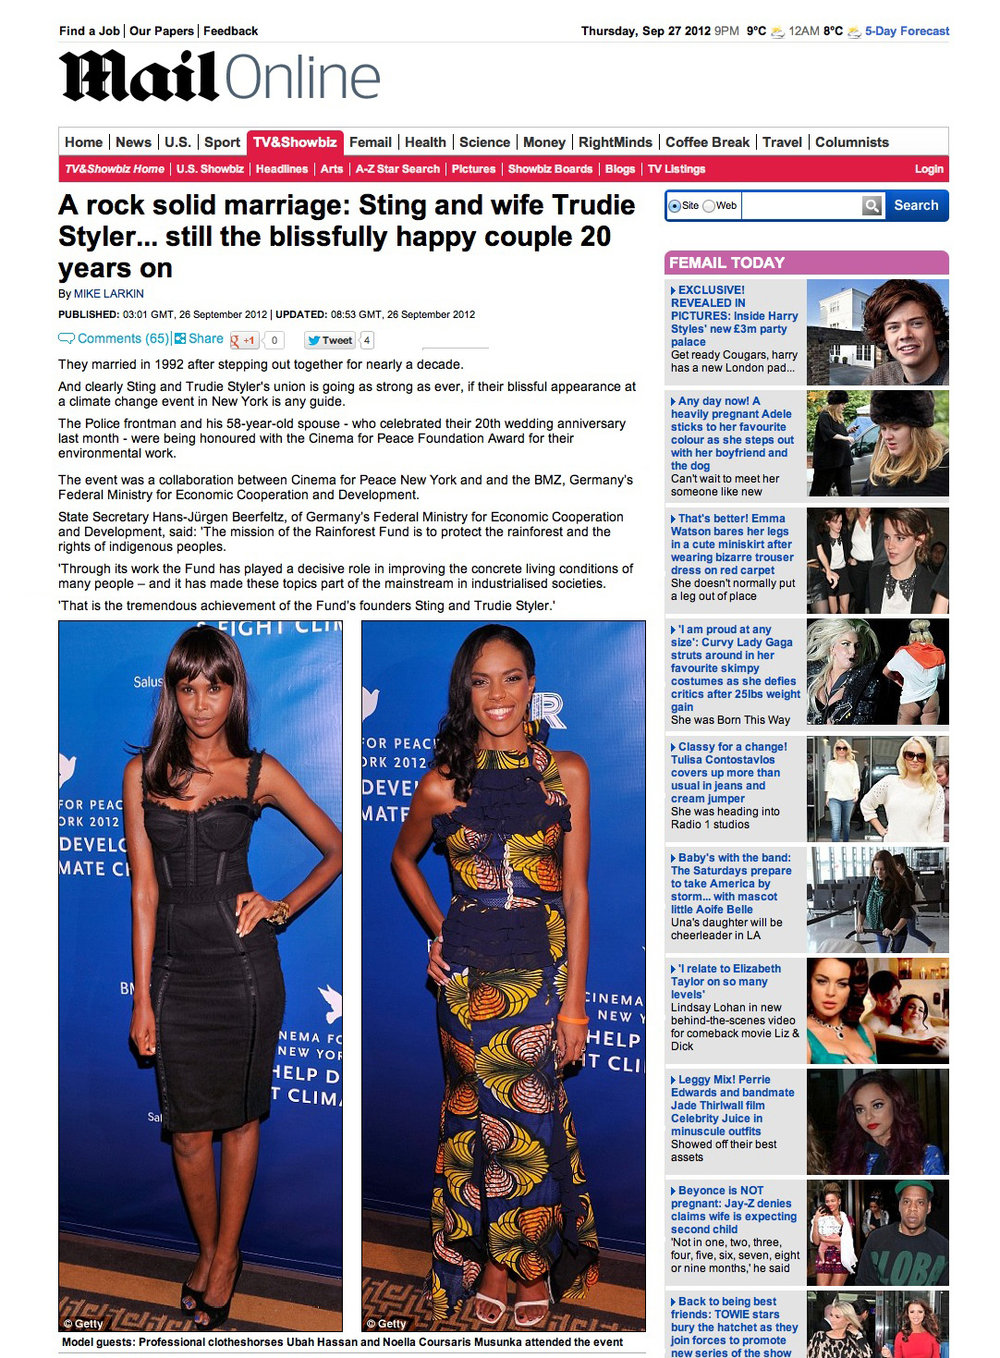 The Cinema for Peace Gala made the trans-atlantic press, as shown here in UK newspaper the Mail Online.